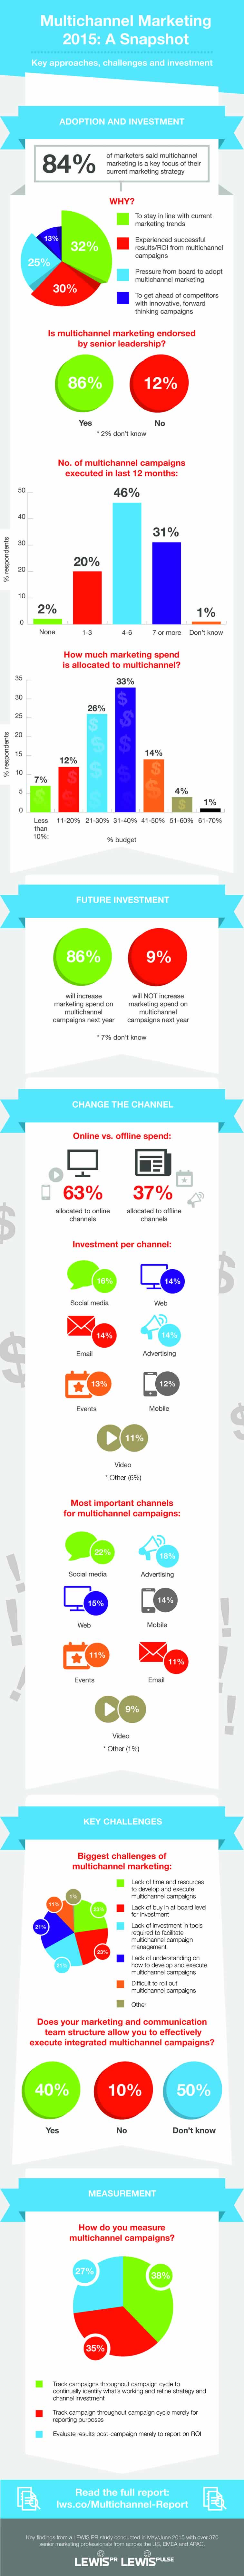 Infographic_Multichannel_2015